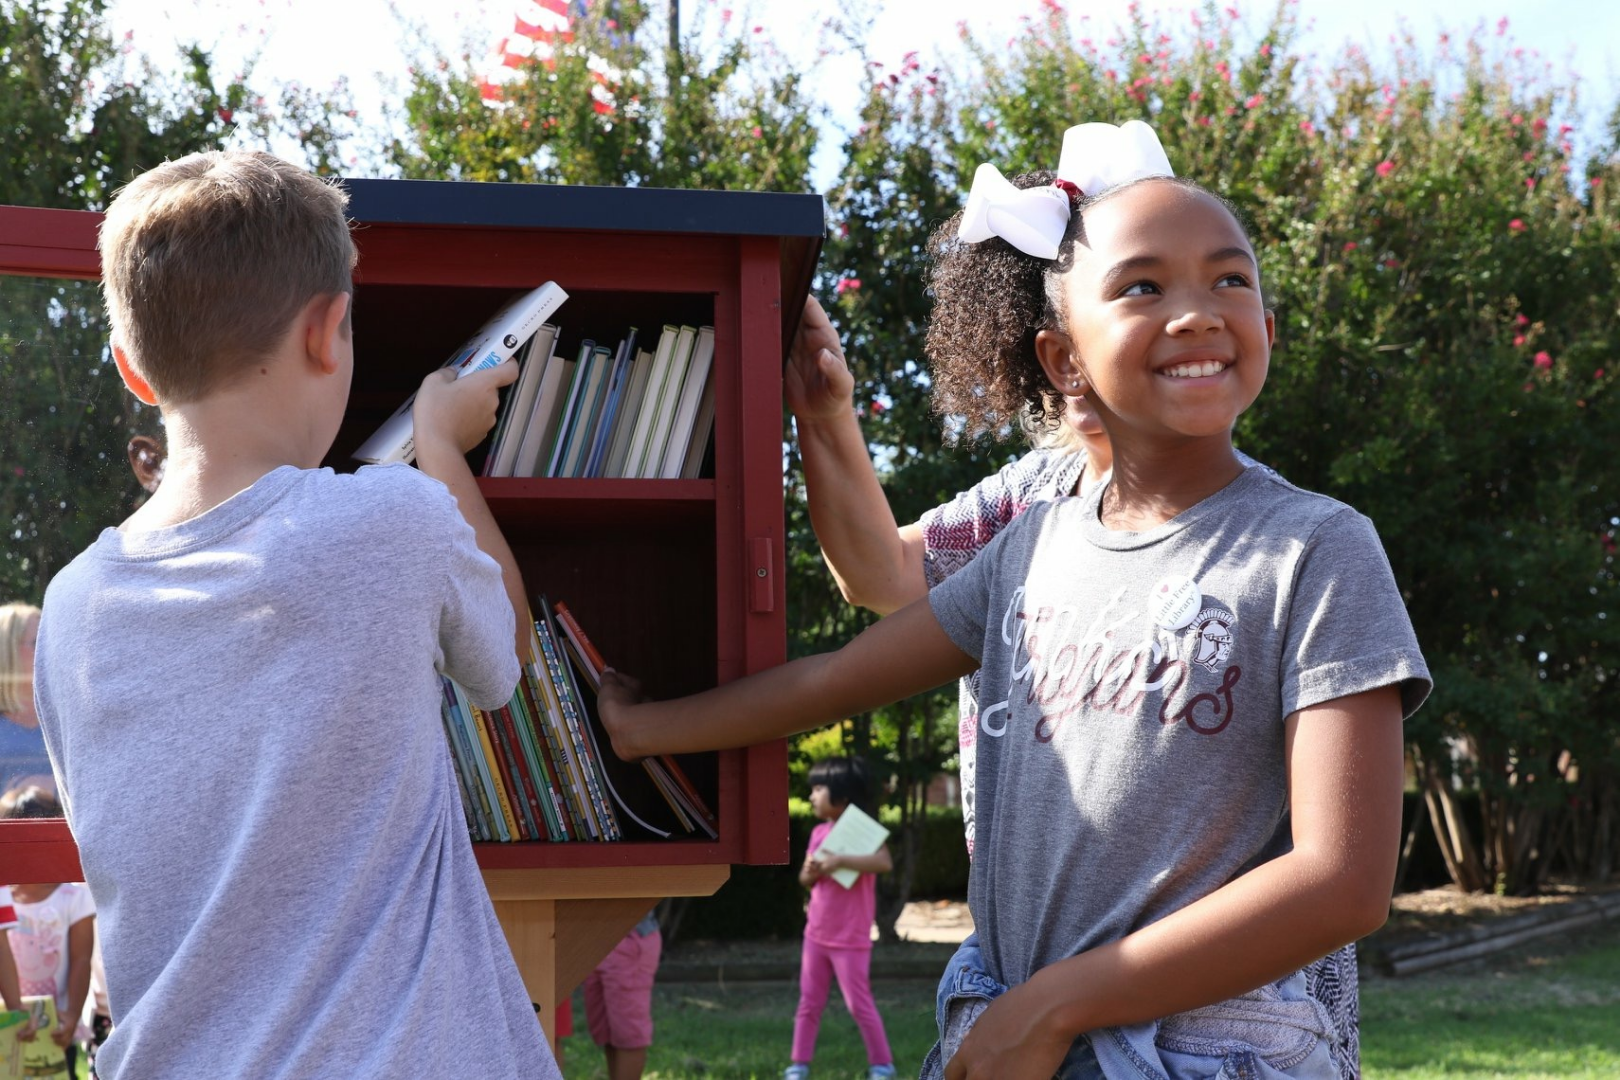 Students place books in the Little Free Library at East Elementary.